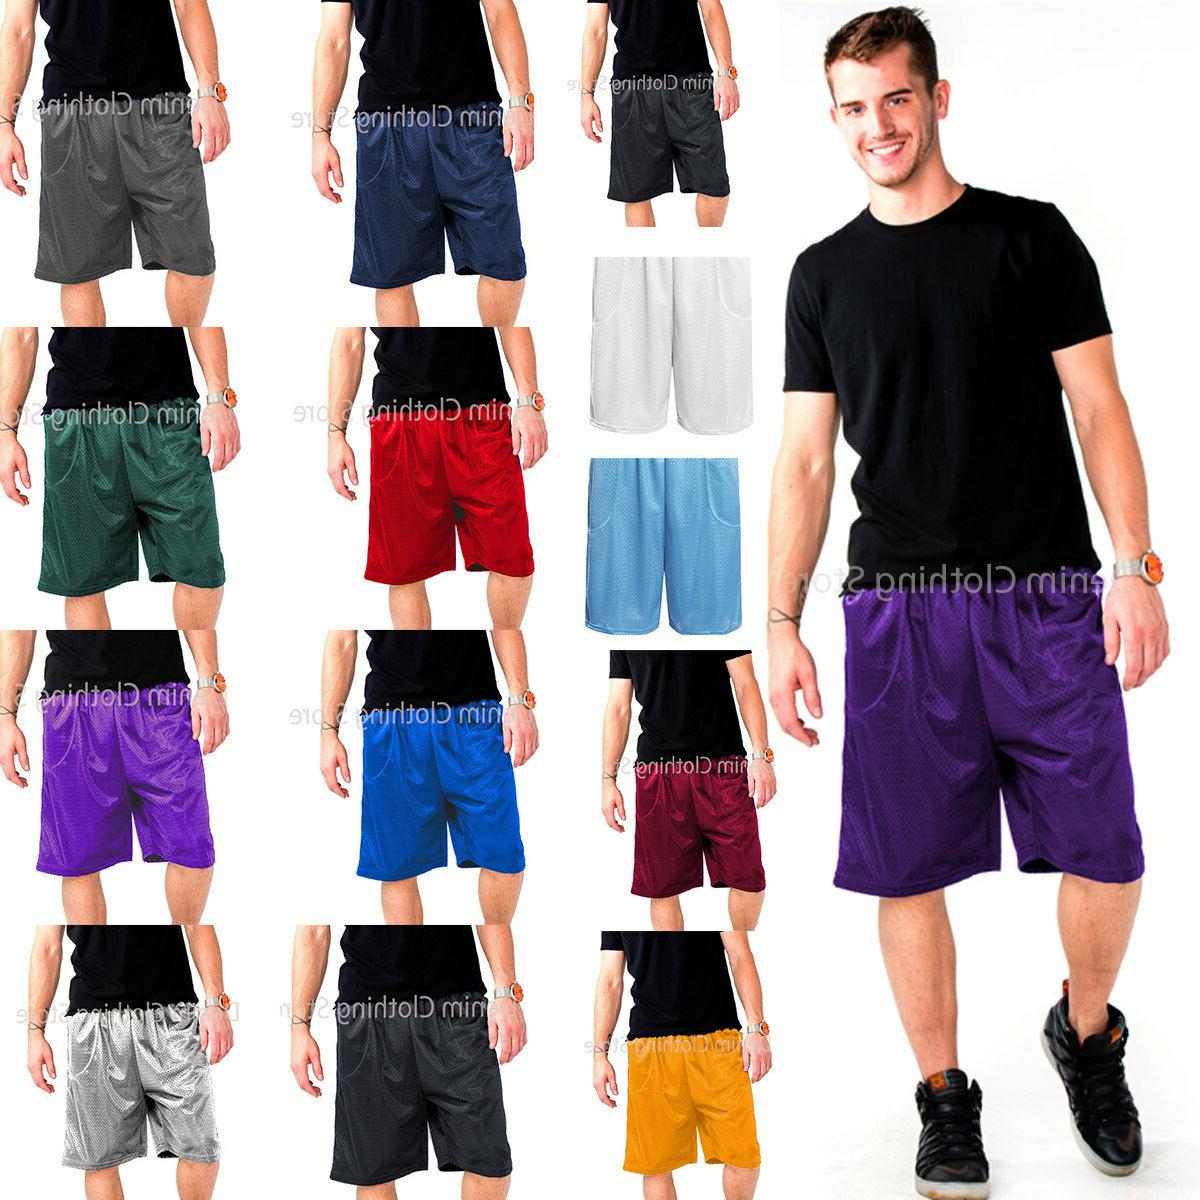 mens athletic jersey 2 pocket mesh shorts